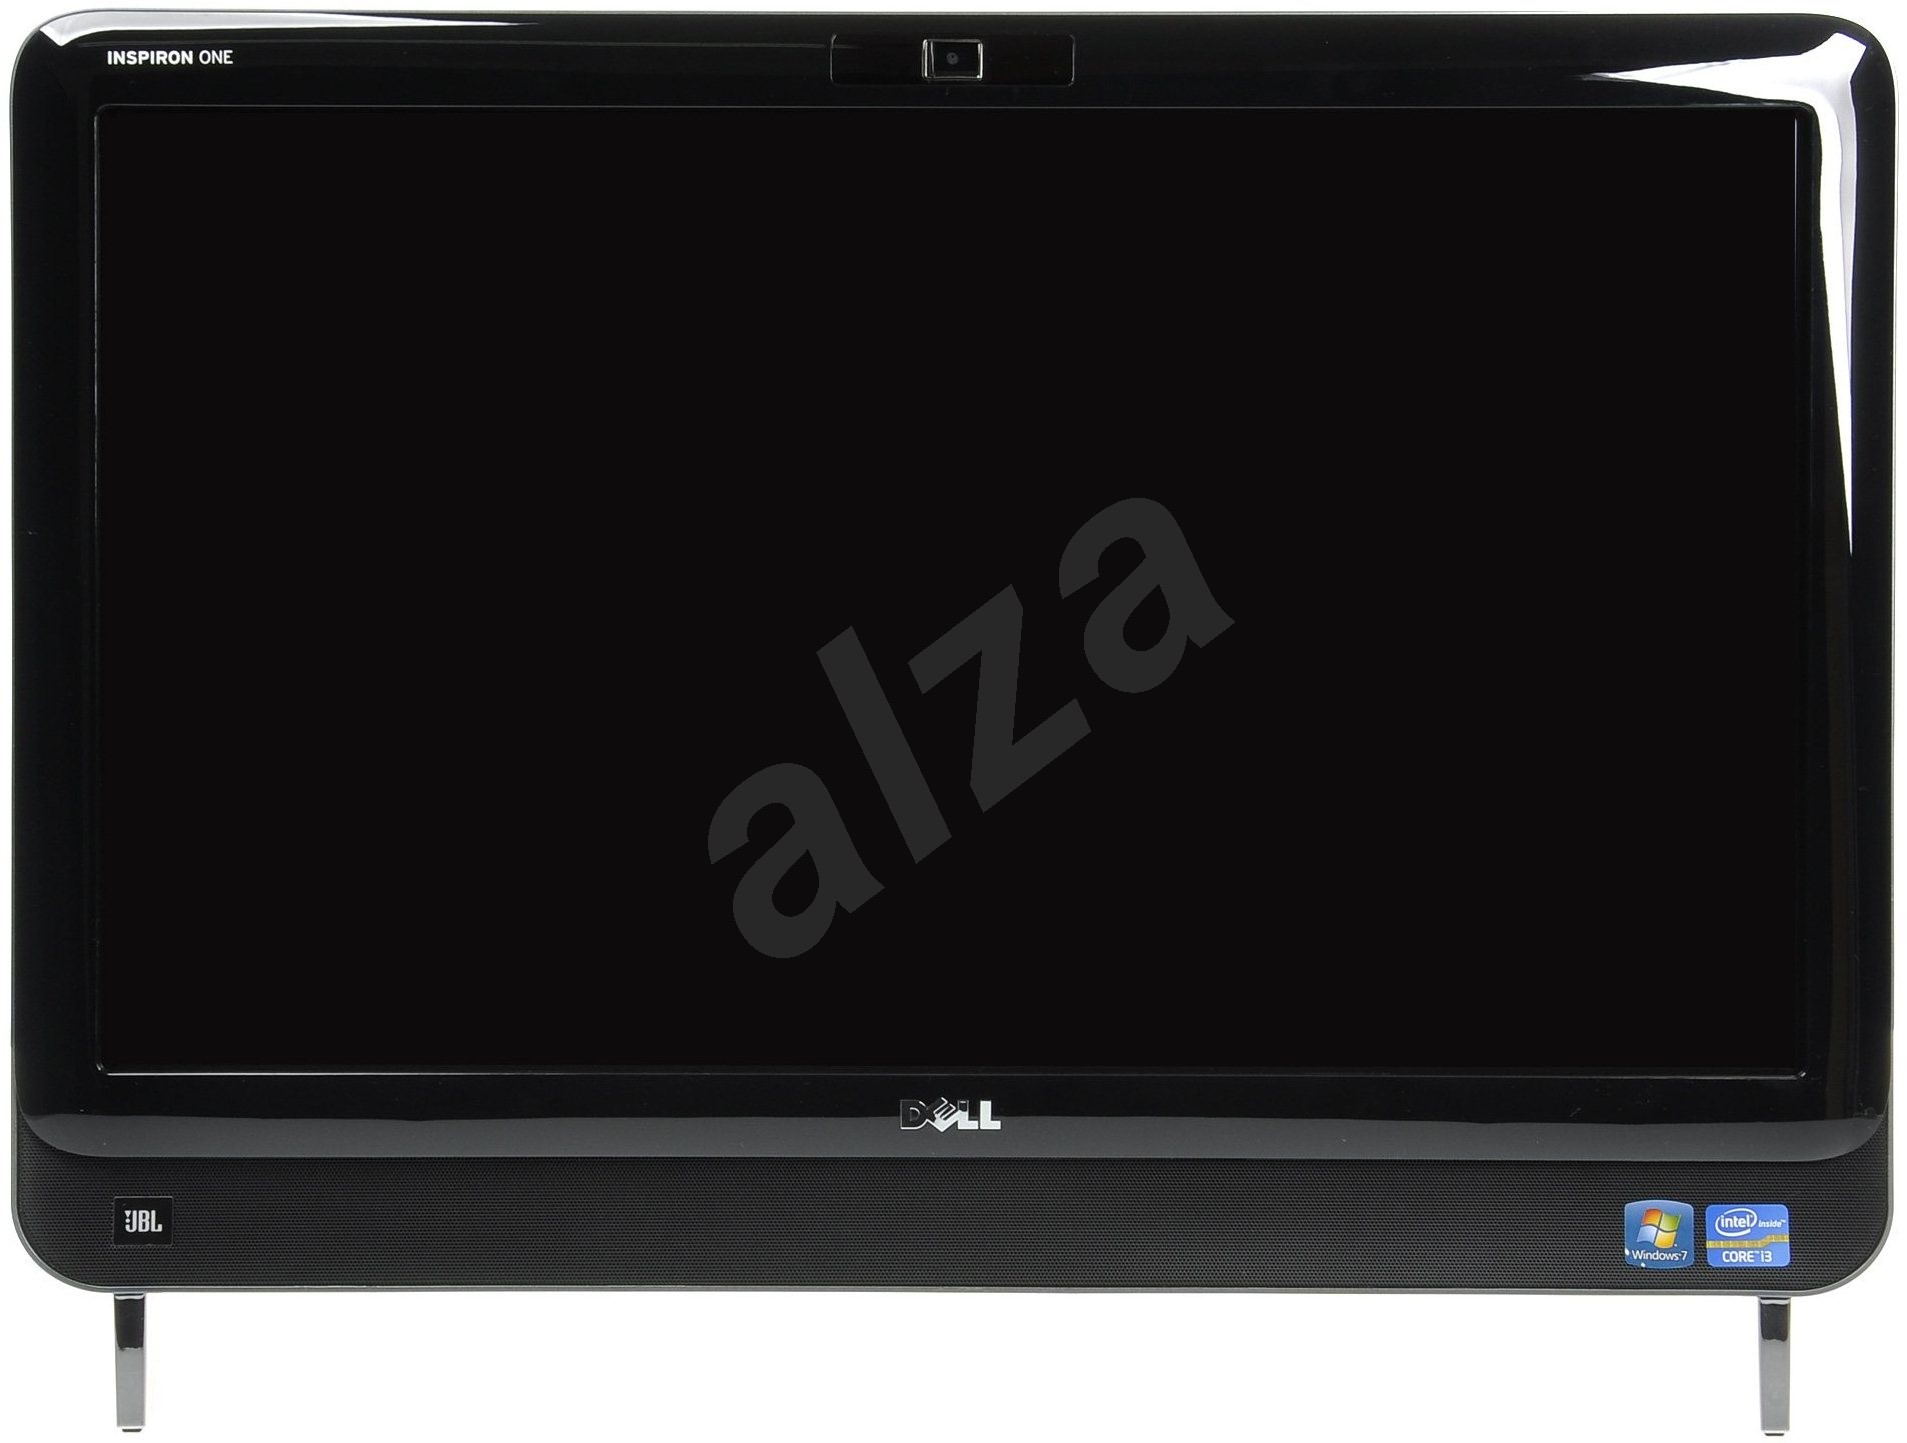 dell inspiron one 2320 manual